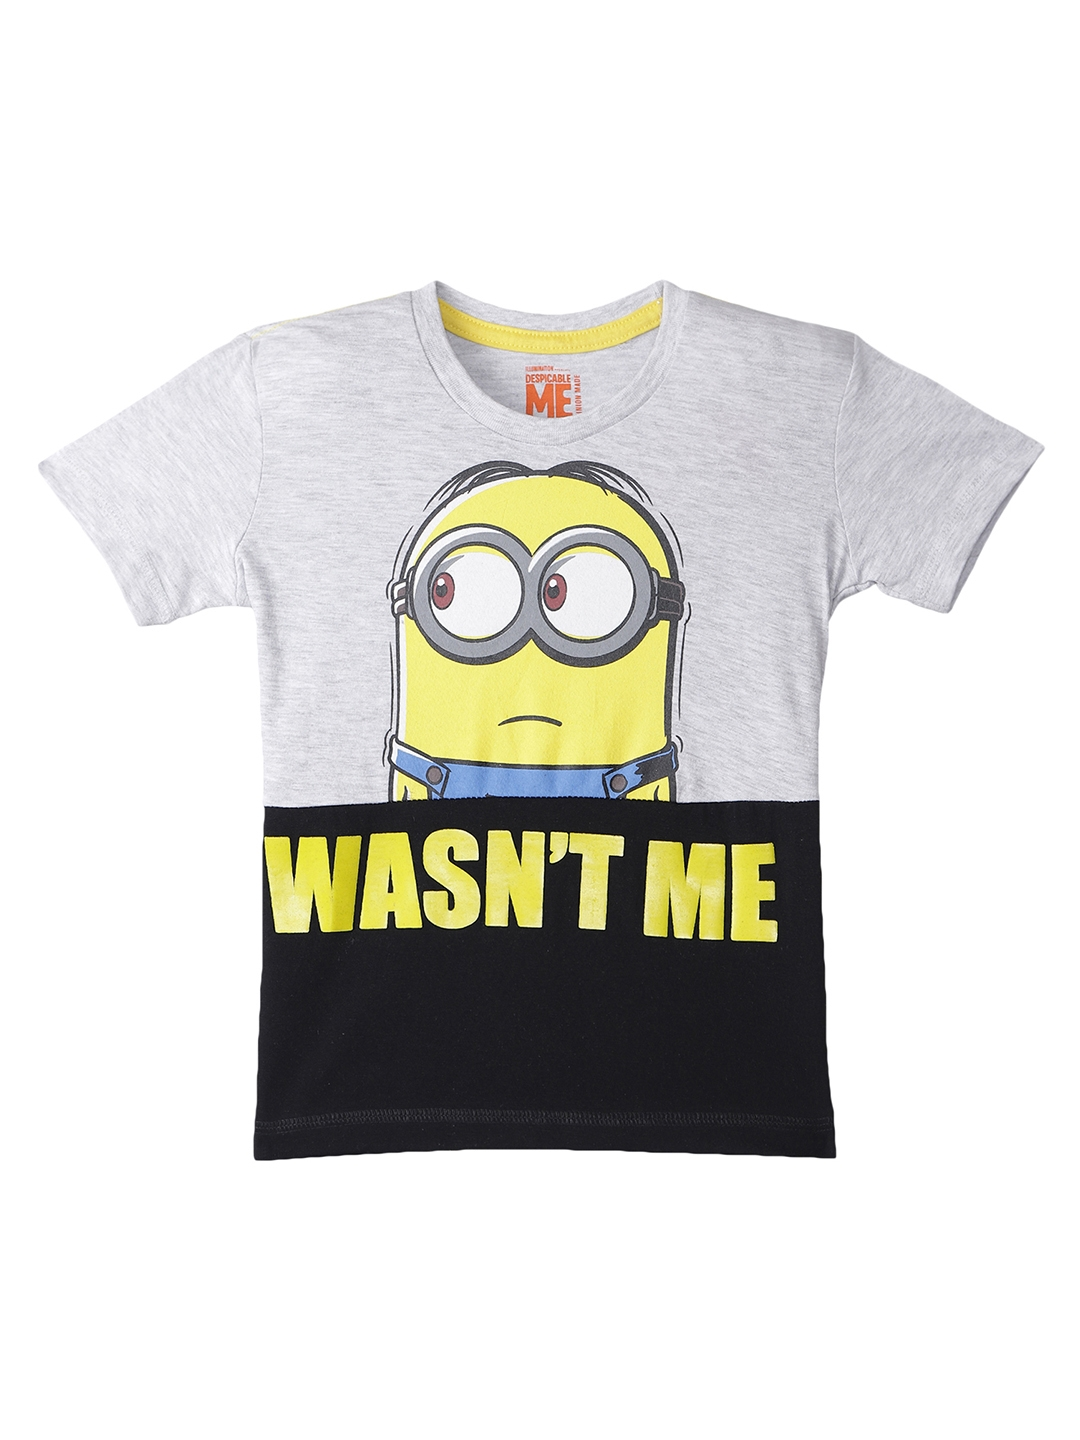 57de2f82e Buy Kids Ville Boys Grey & Black Minions Printed Round Neck T Shirt ...